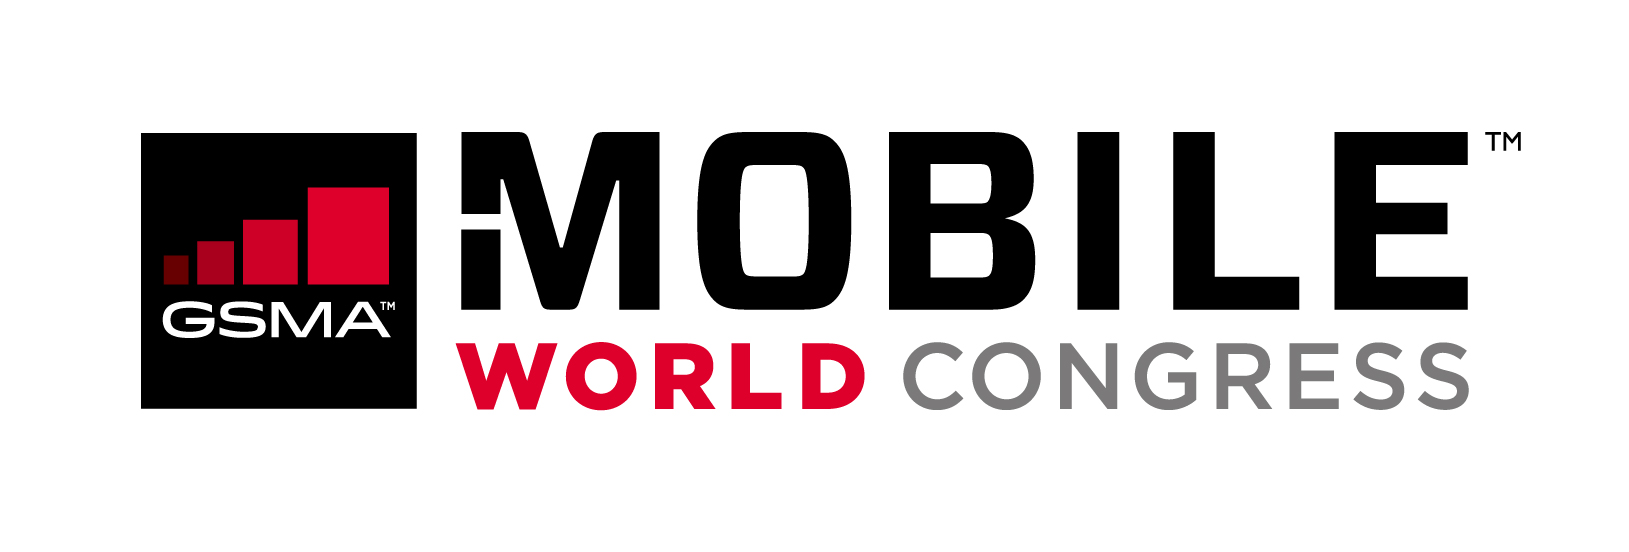 The 2017 World Mobile Congress took place from February 27 to March 2 in Barcelona, attracting industry leaders from all over the world.